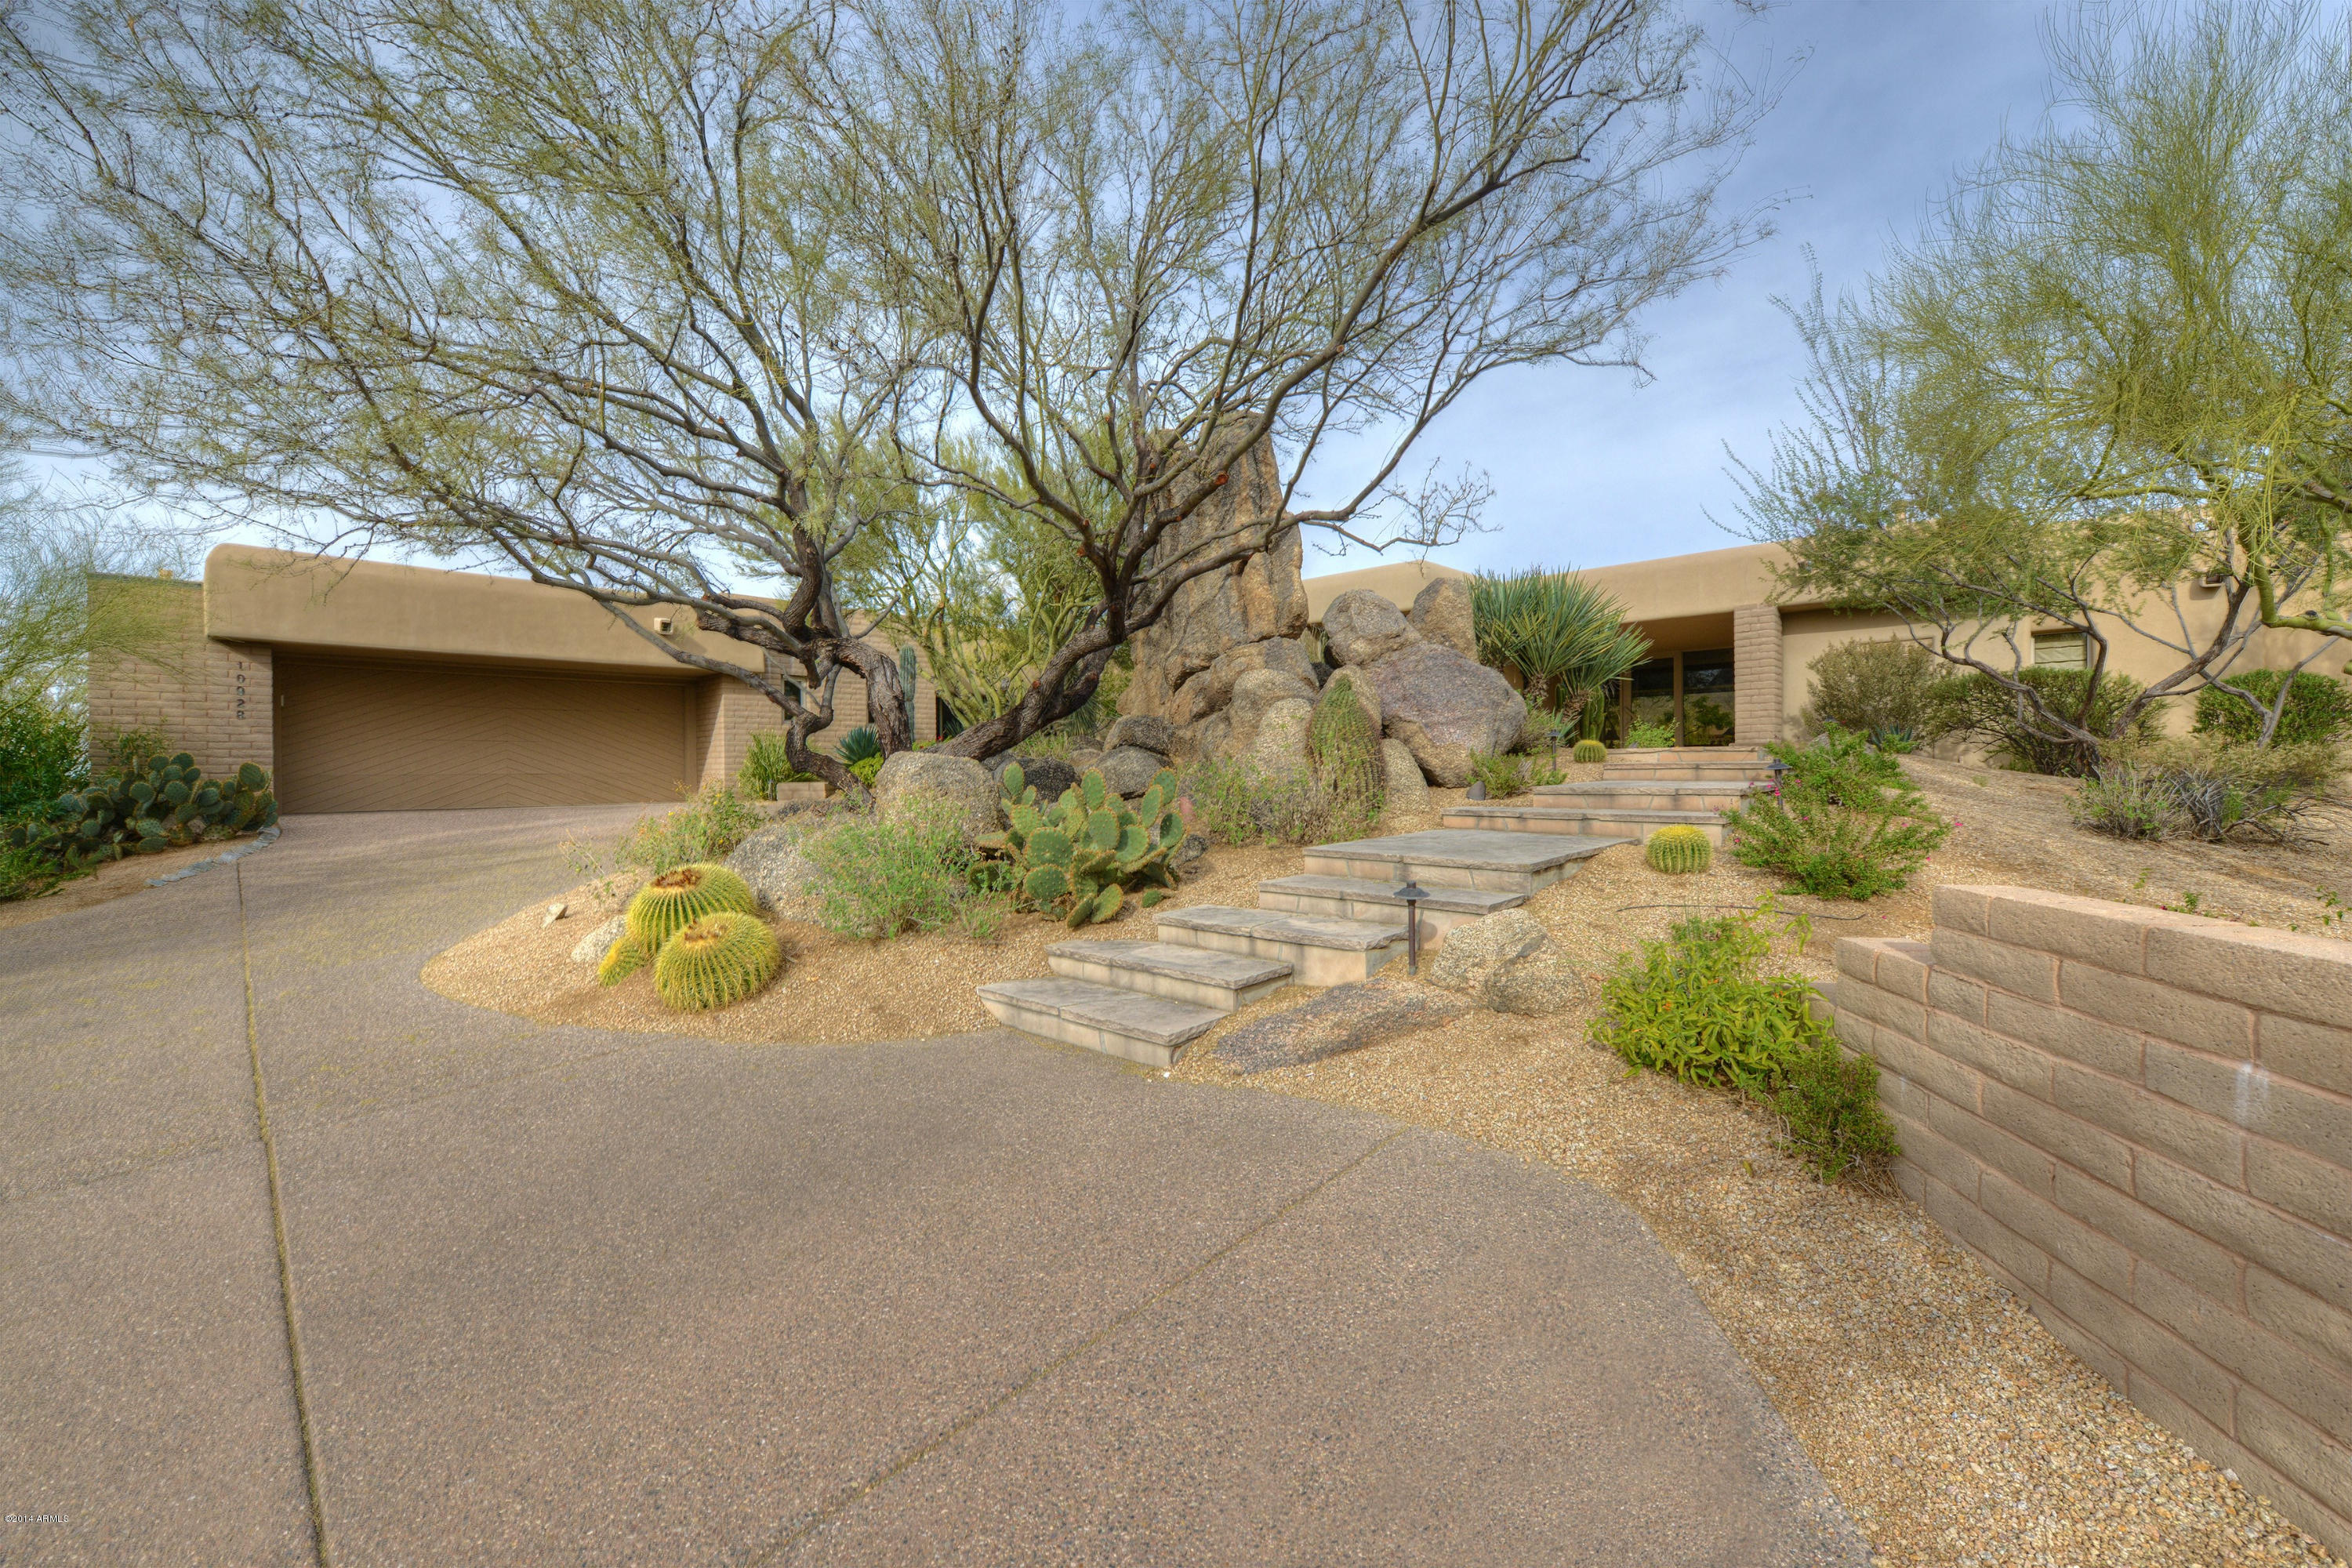 Photo of 10928 E Graythorn Drive, Scottsdale, AZ 85262